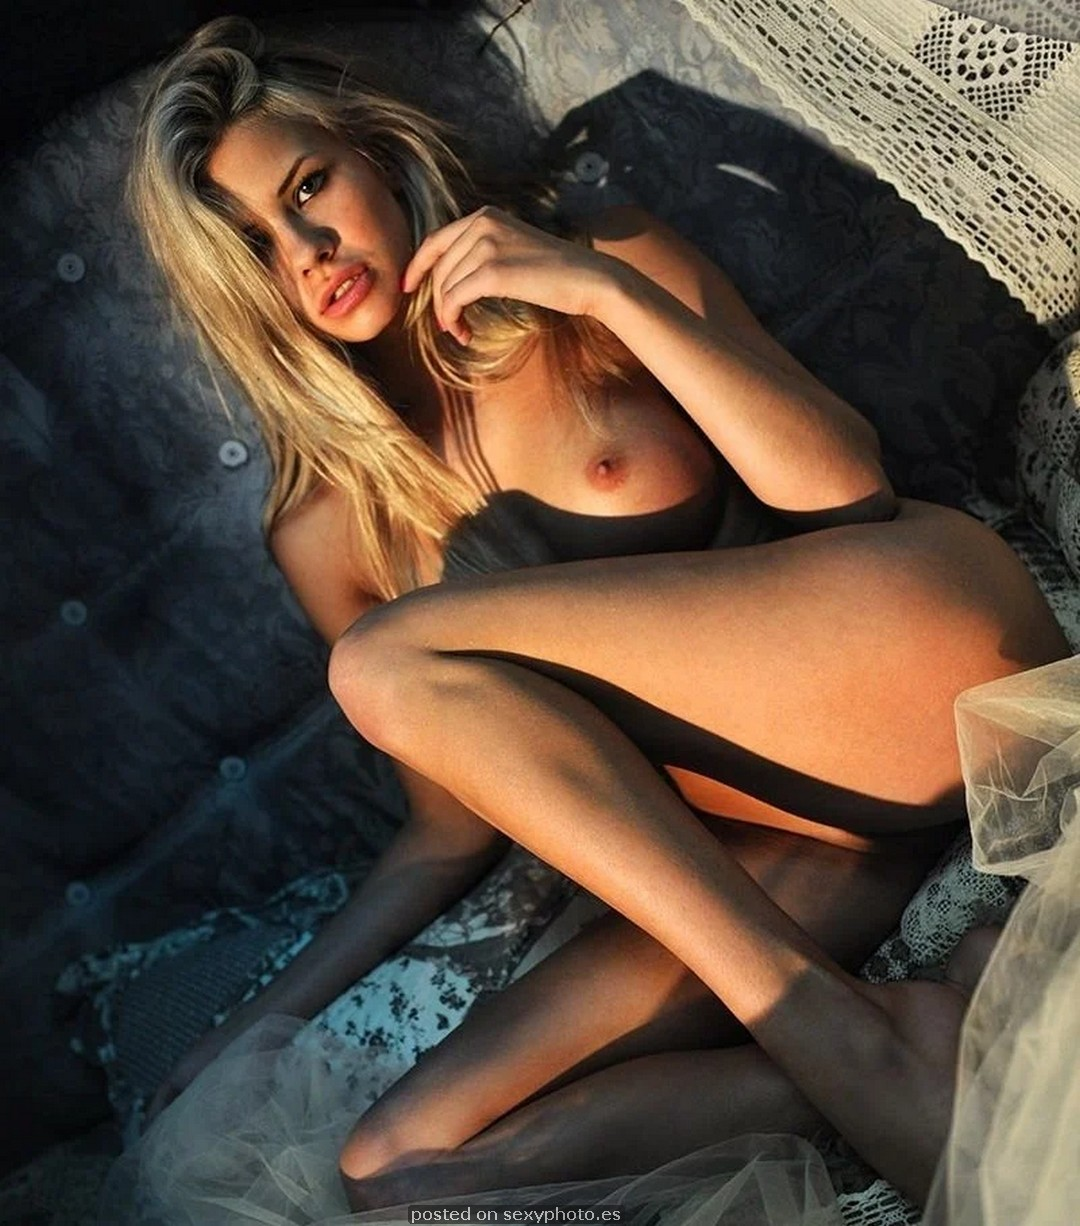 Nata-Lee-Tits-Photos-pussy-ass-shaved-To-Satisfy-sexyphoto fotos sexis_1